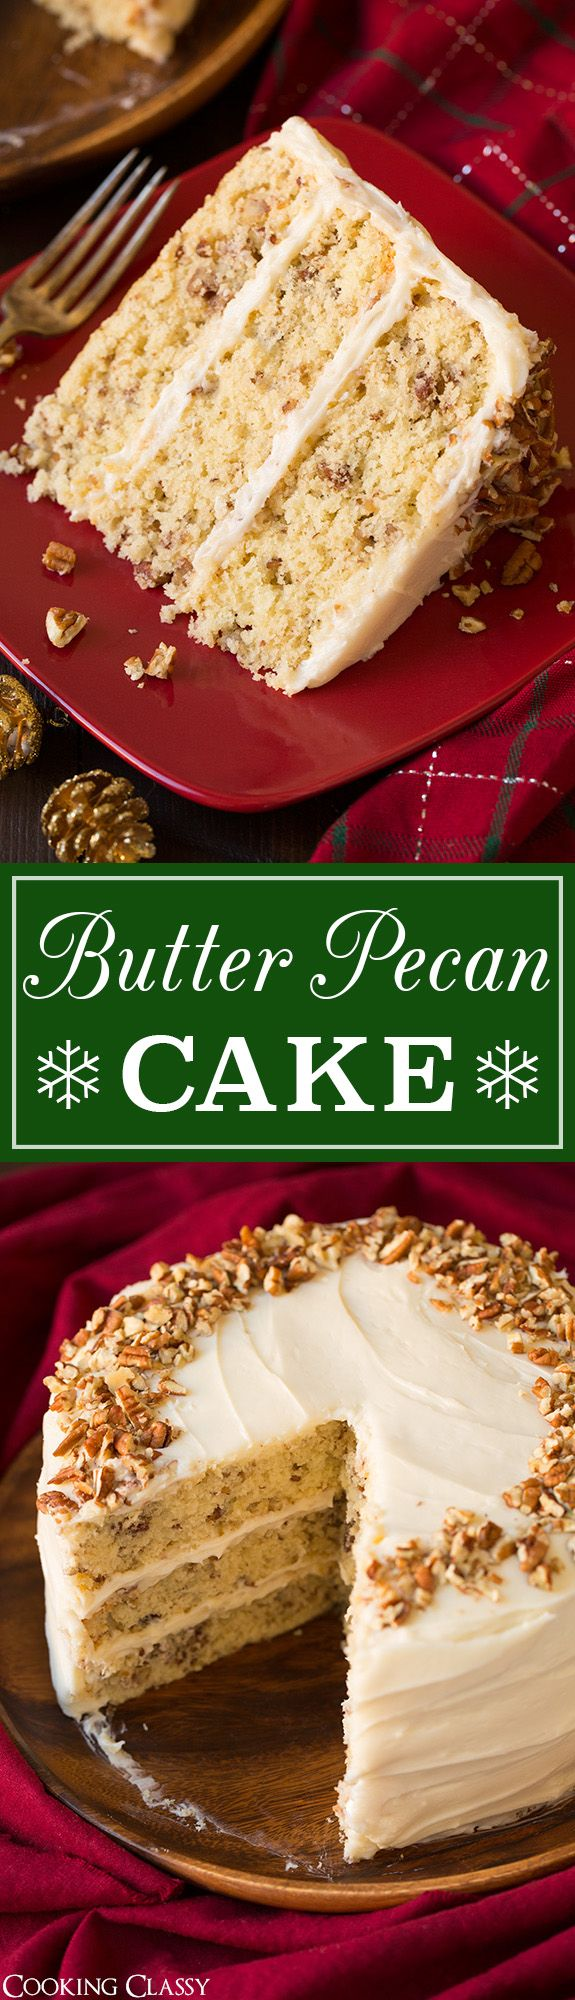 Butter Pecan Cake - we LOVED this cake!! Soft and moist and the cream cheese frosting is to die for! Perfect for Christmas!